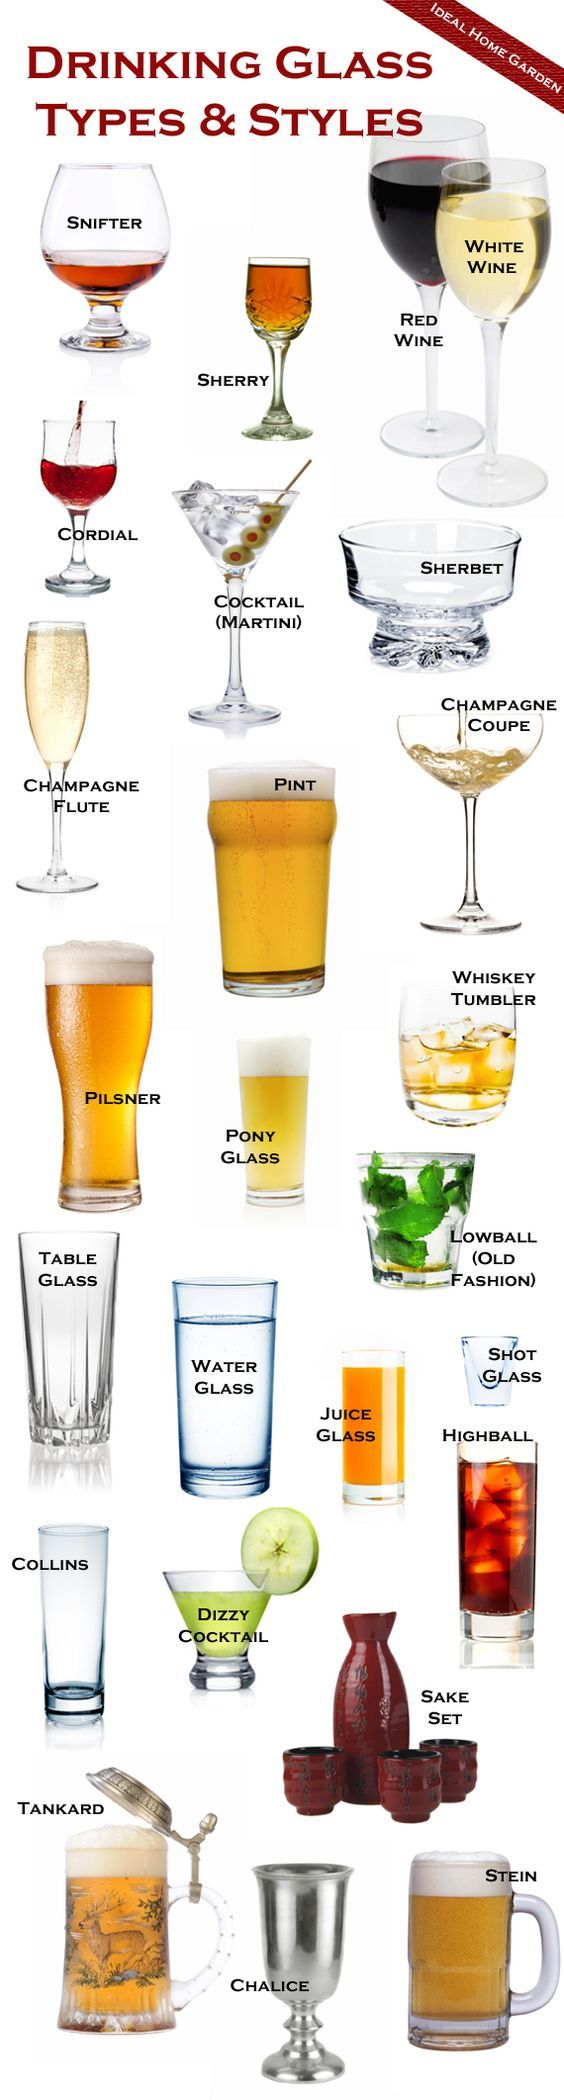 25 Best Ideas About Types Of Drinking Glasses On